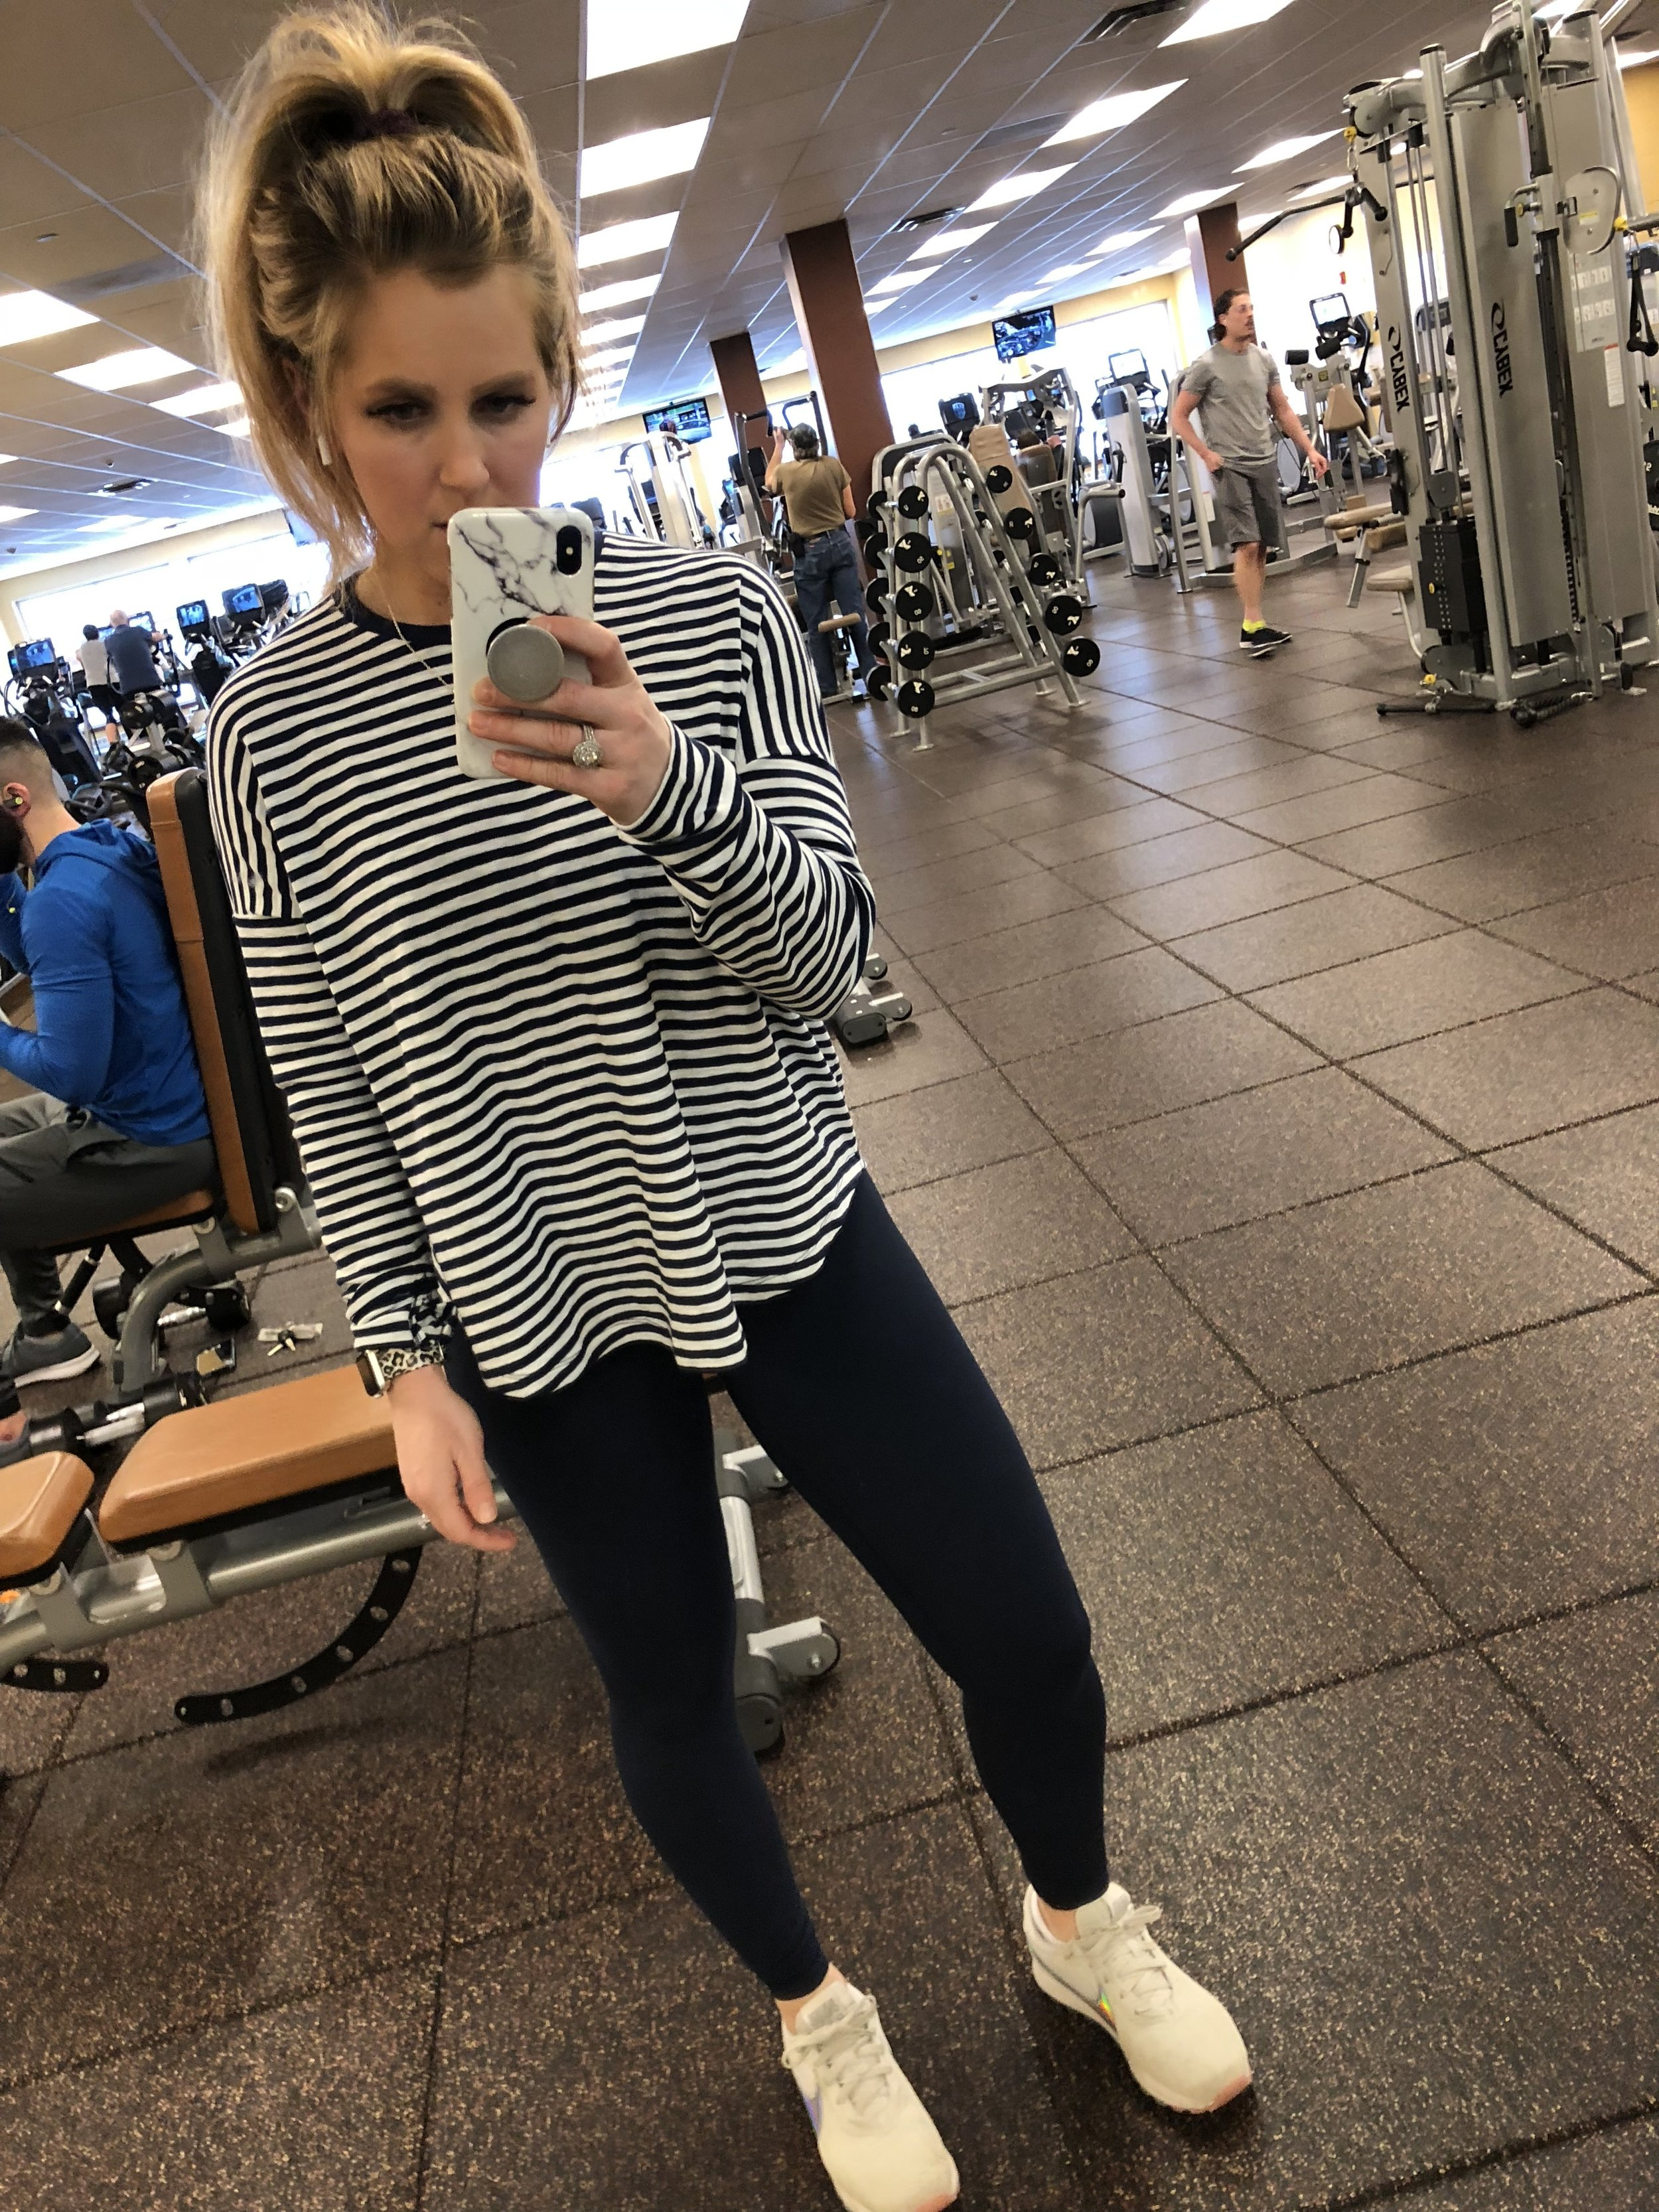 764d2c223796b7 4 weeks postpartum and hit up the gym for the first time ….YES